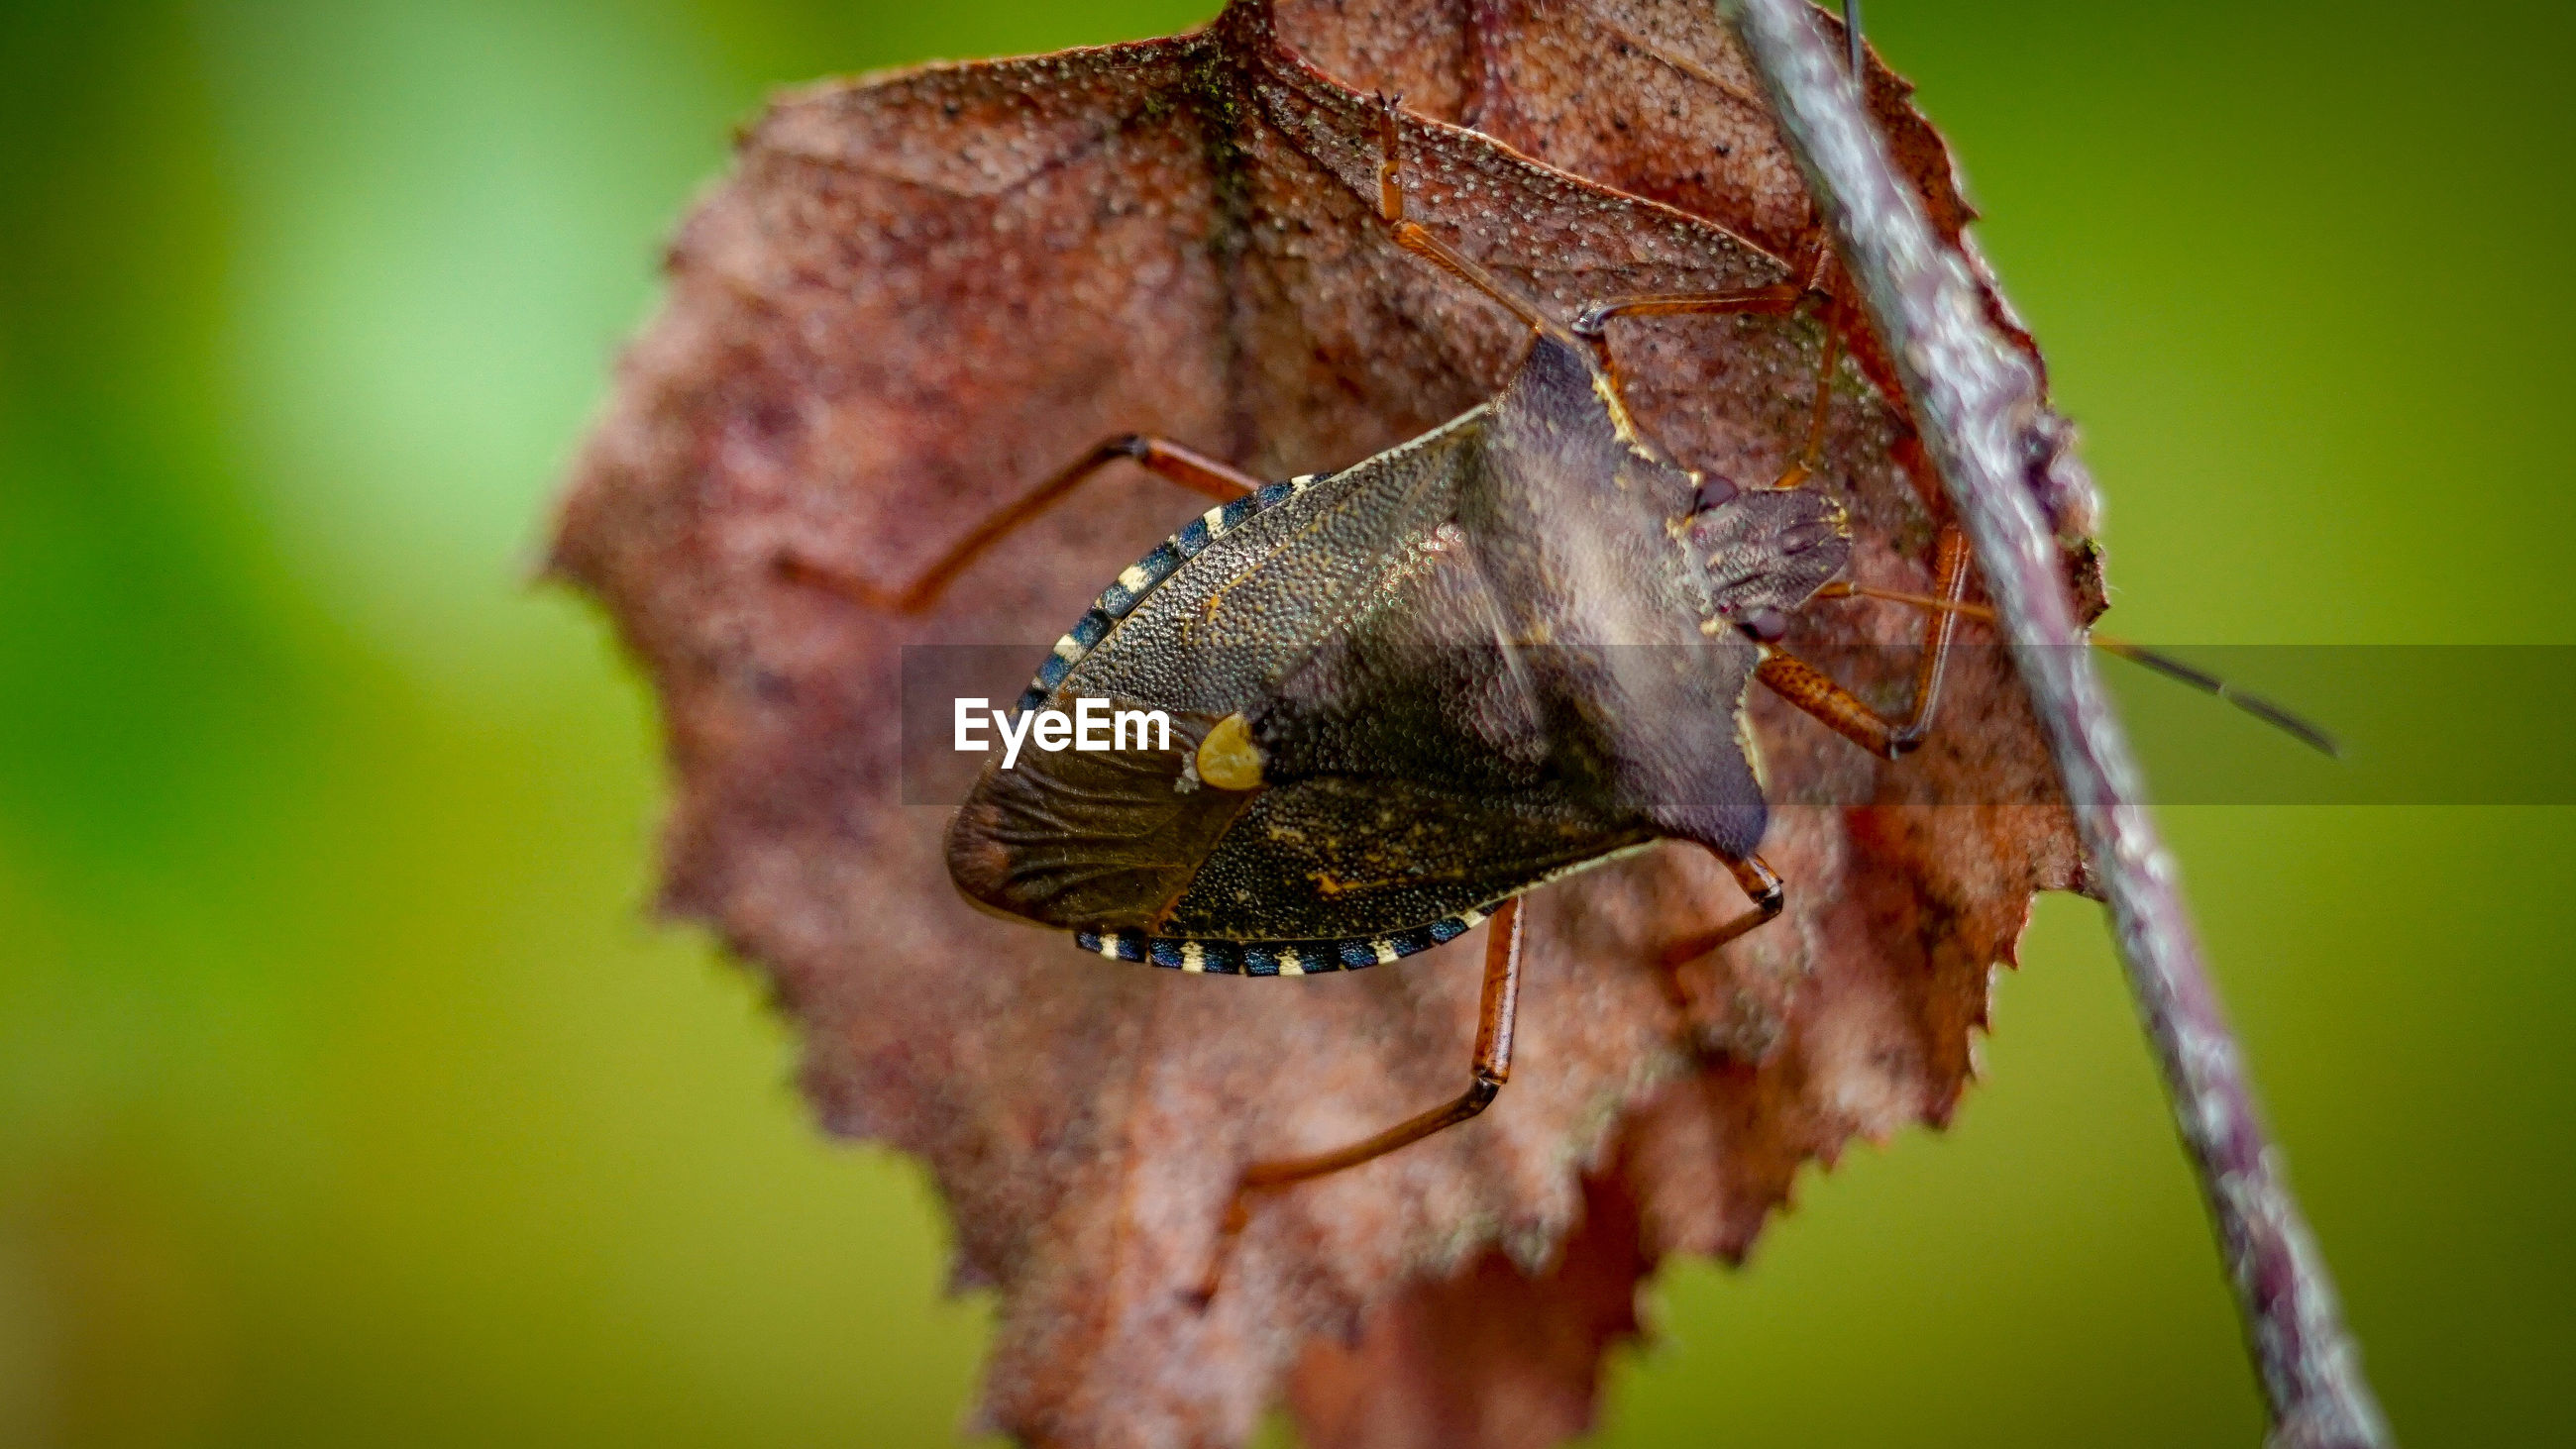 Close-up of insect on a leaf